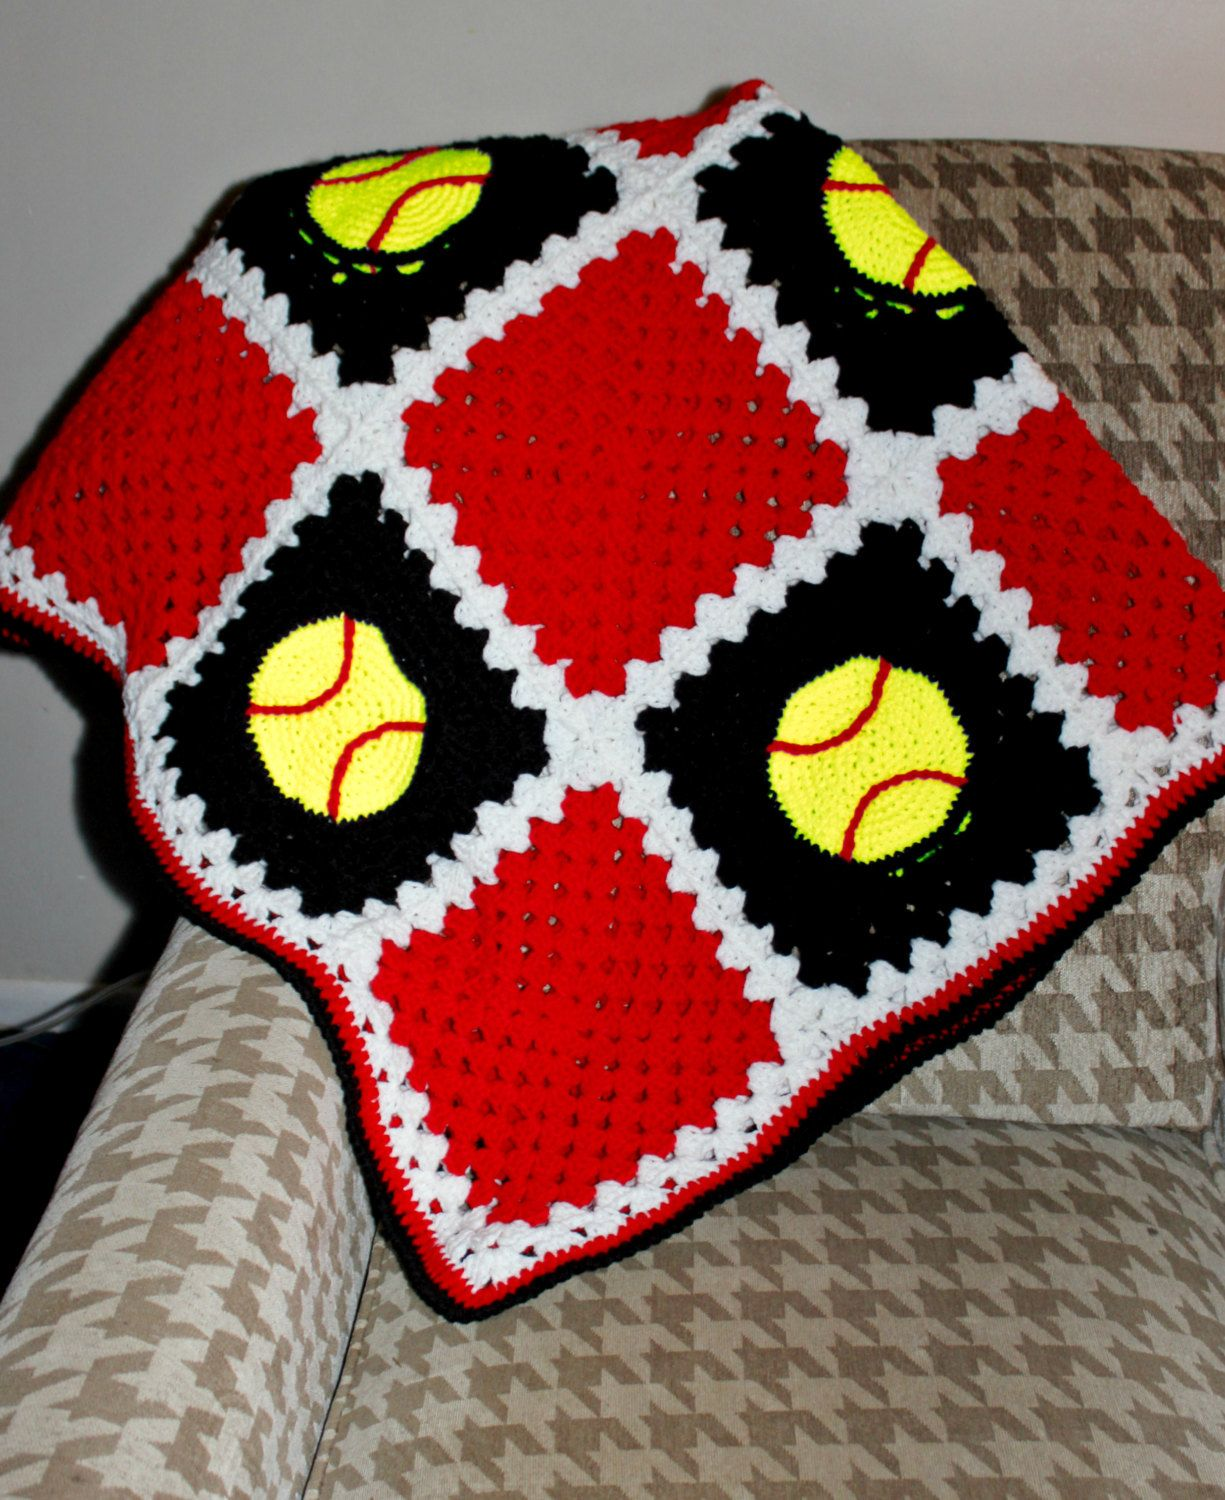 Softball Strikes Crochet Afghan Pattern | Pinterest | Crochet afghan ...